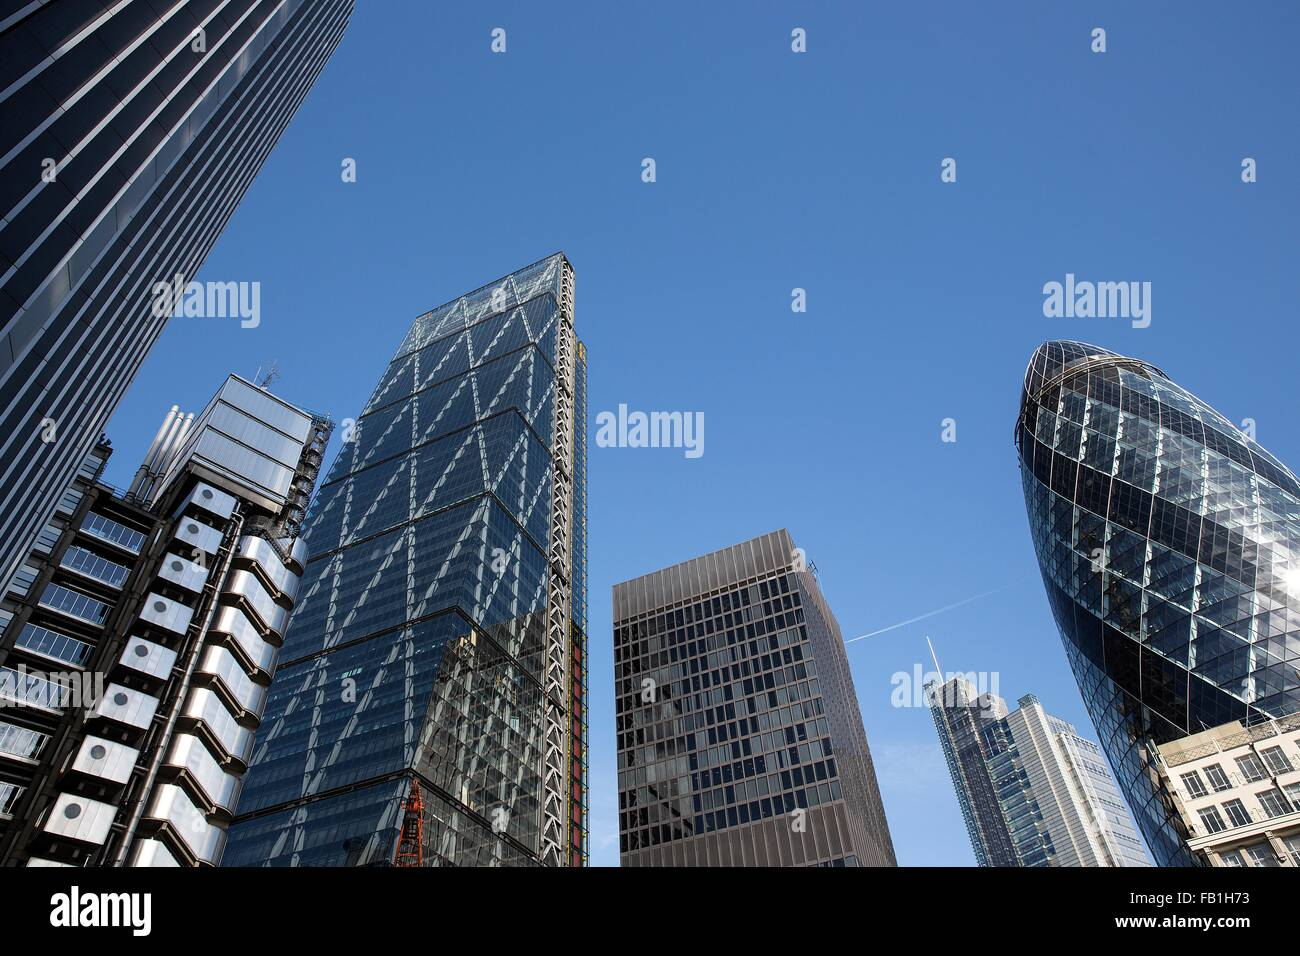 Low angle view of the Gherkin, Lloyds Building and the Cheesegrater, London, UK - Stock Image